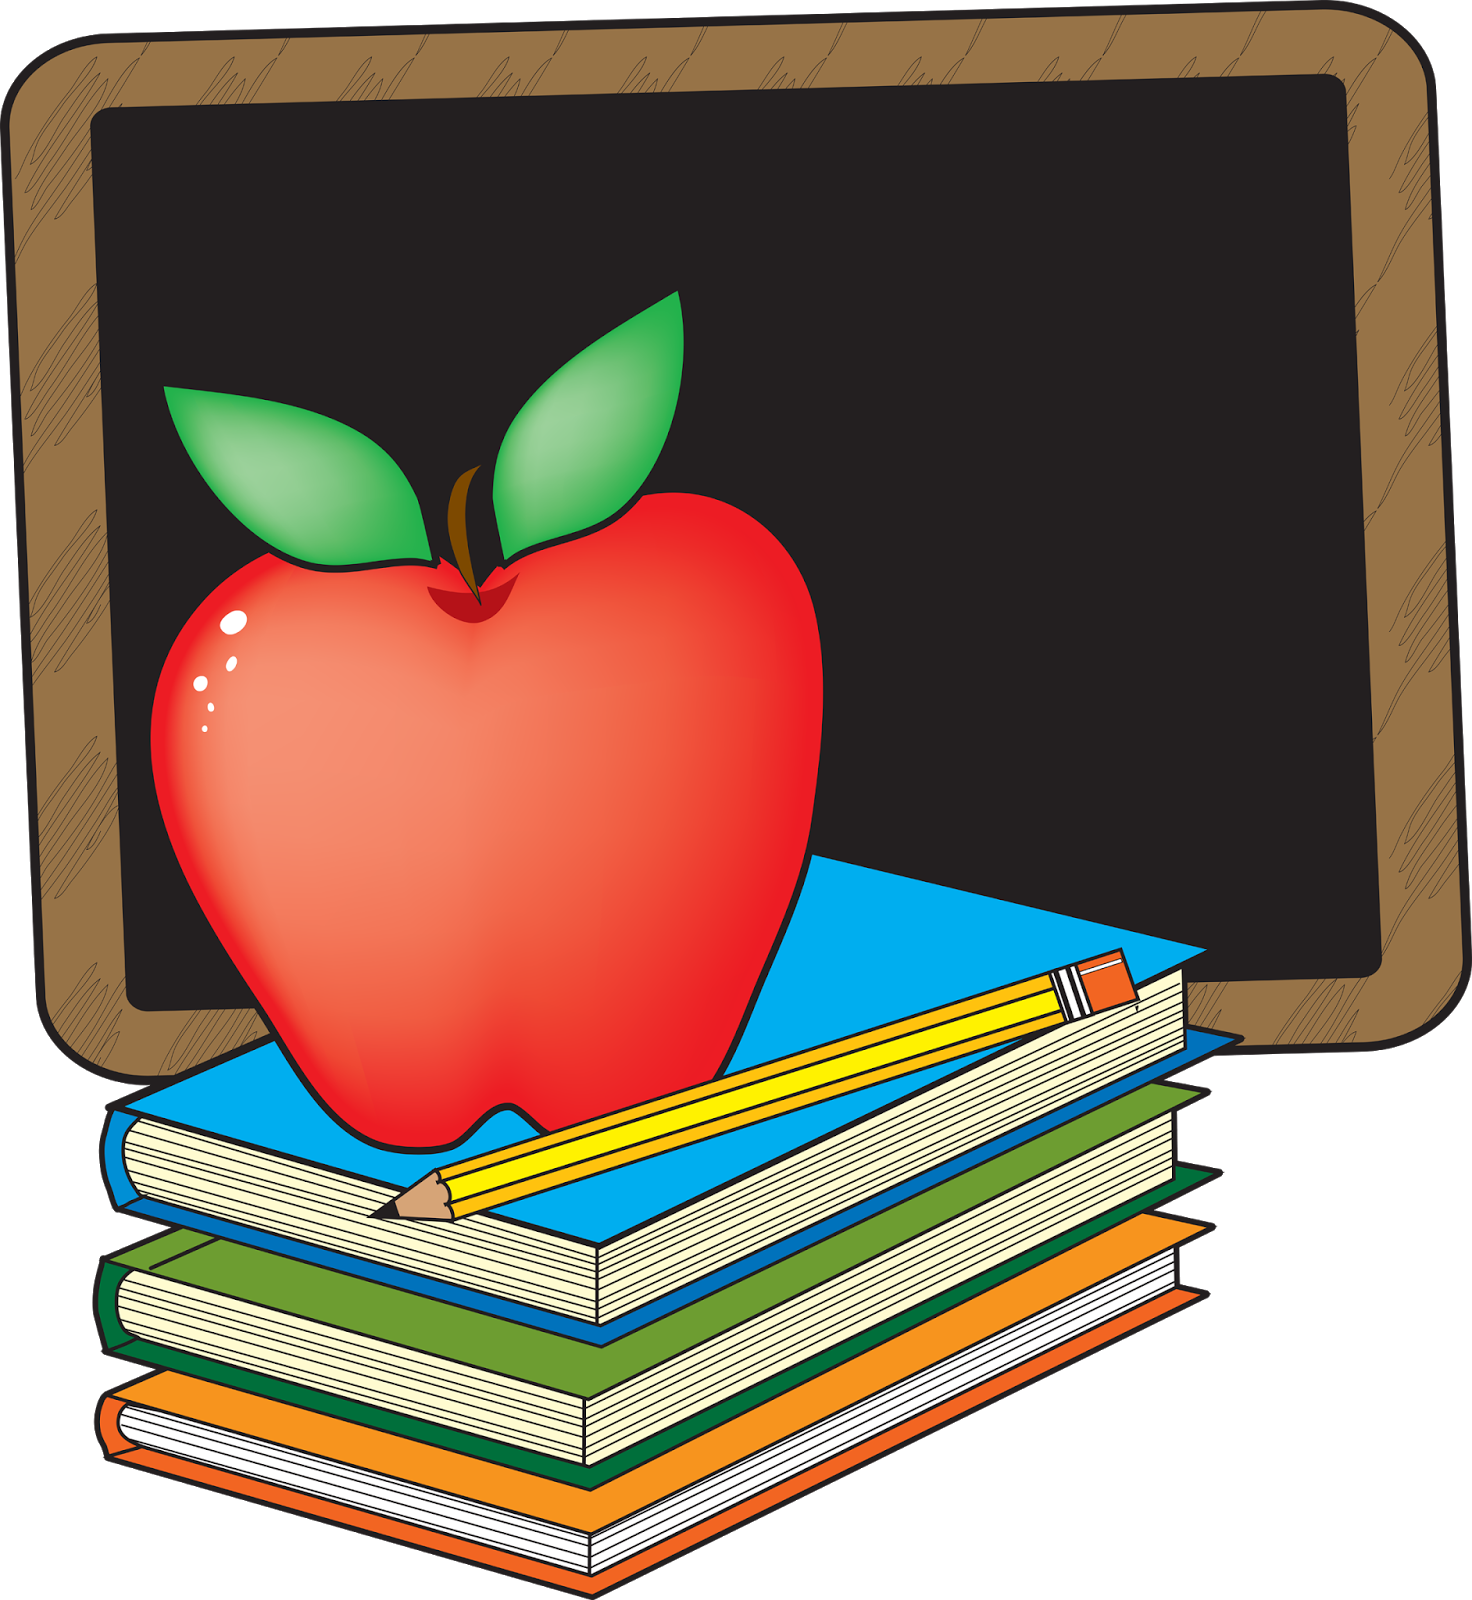 Apple on books clipart image black and white stock Our Virtual English Classroom: Dream School image black and white stock